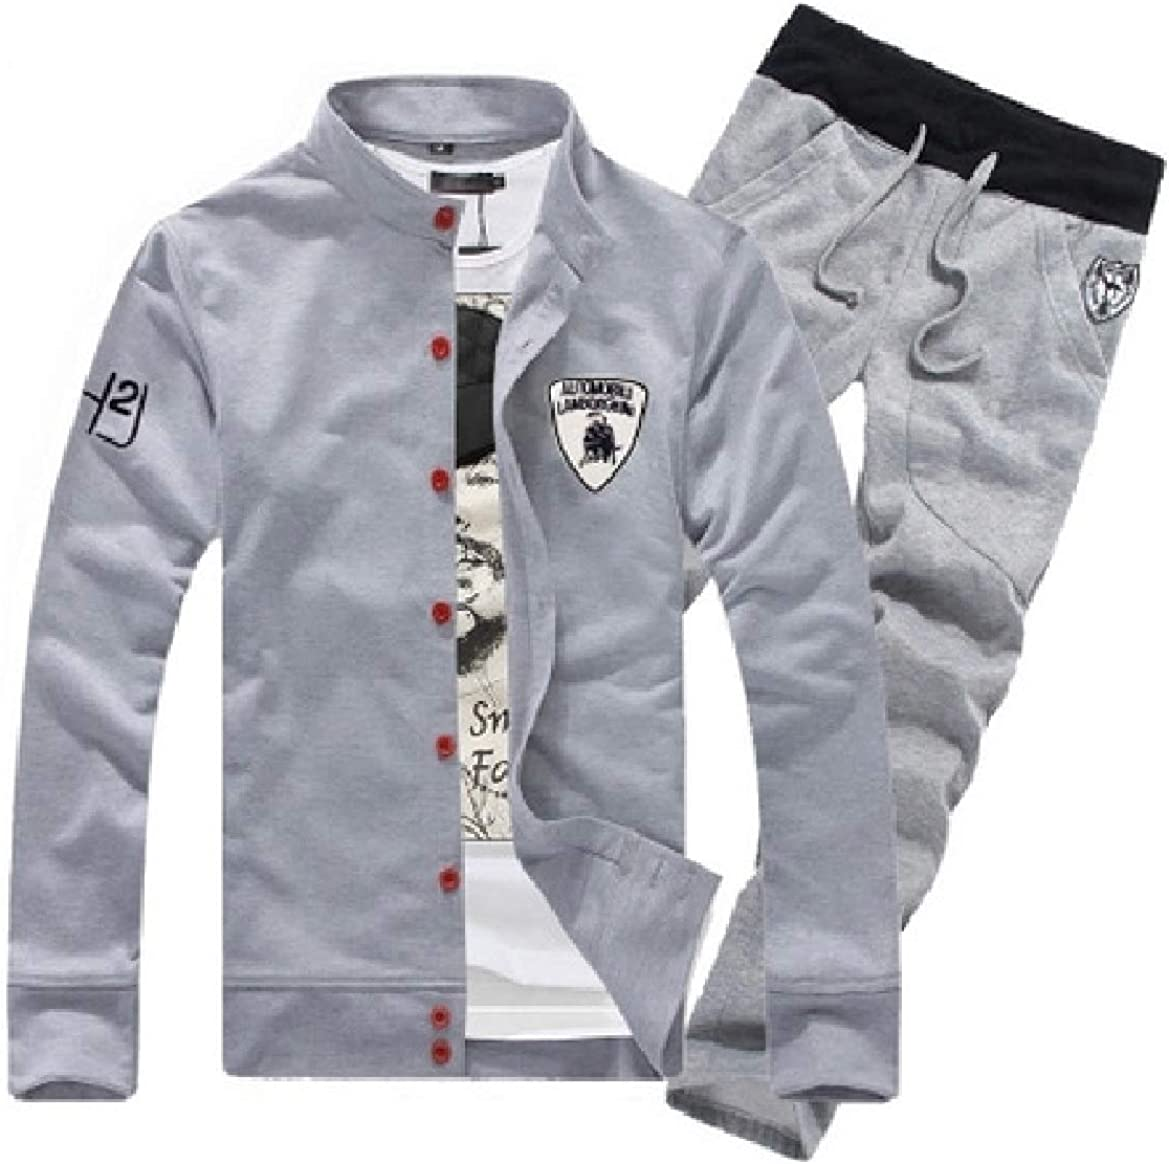 Abetteric Men Hooded Workout Juniors Casual Oversize Sweatsuit Pants Set